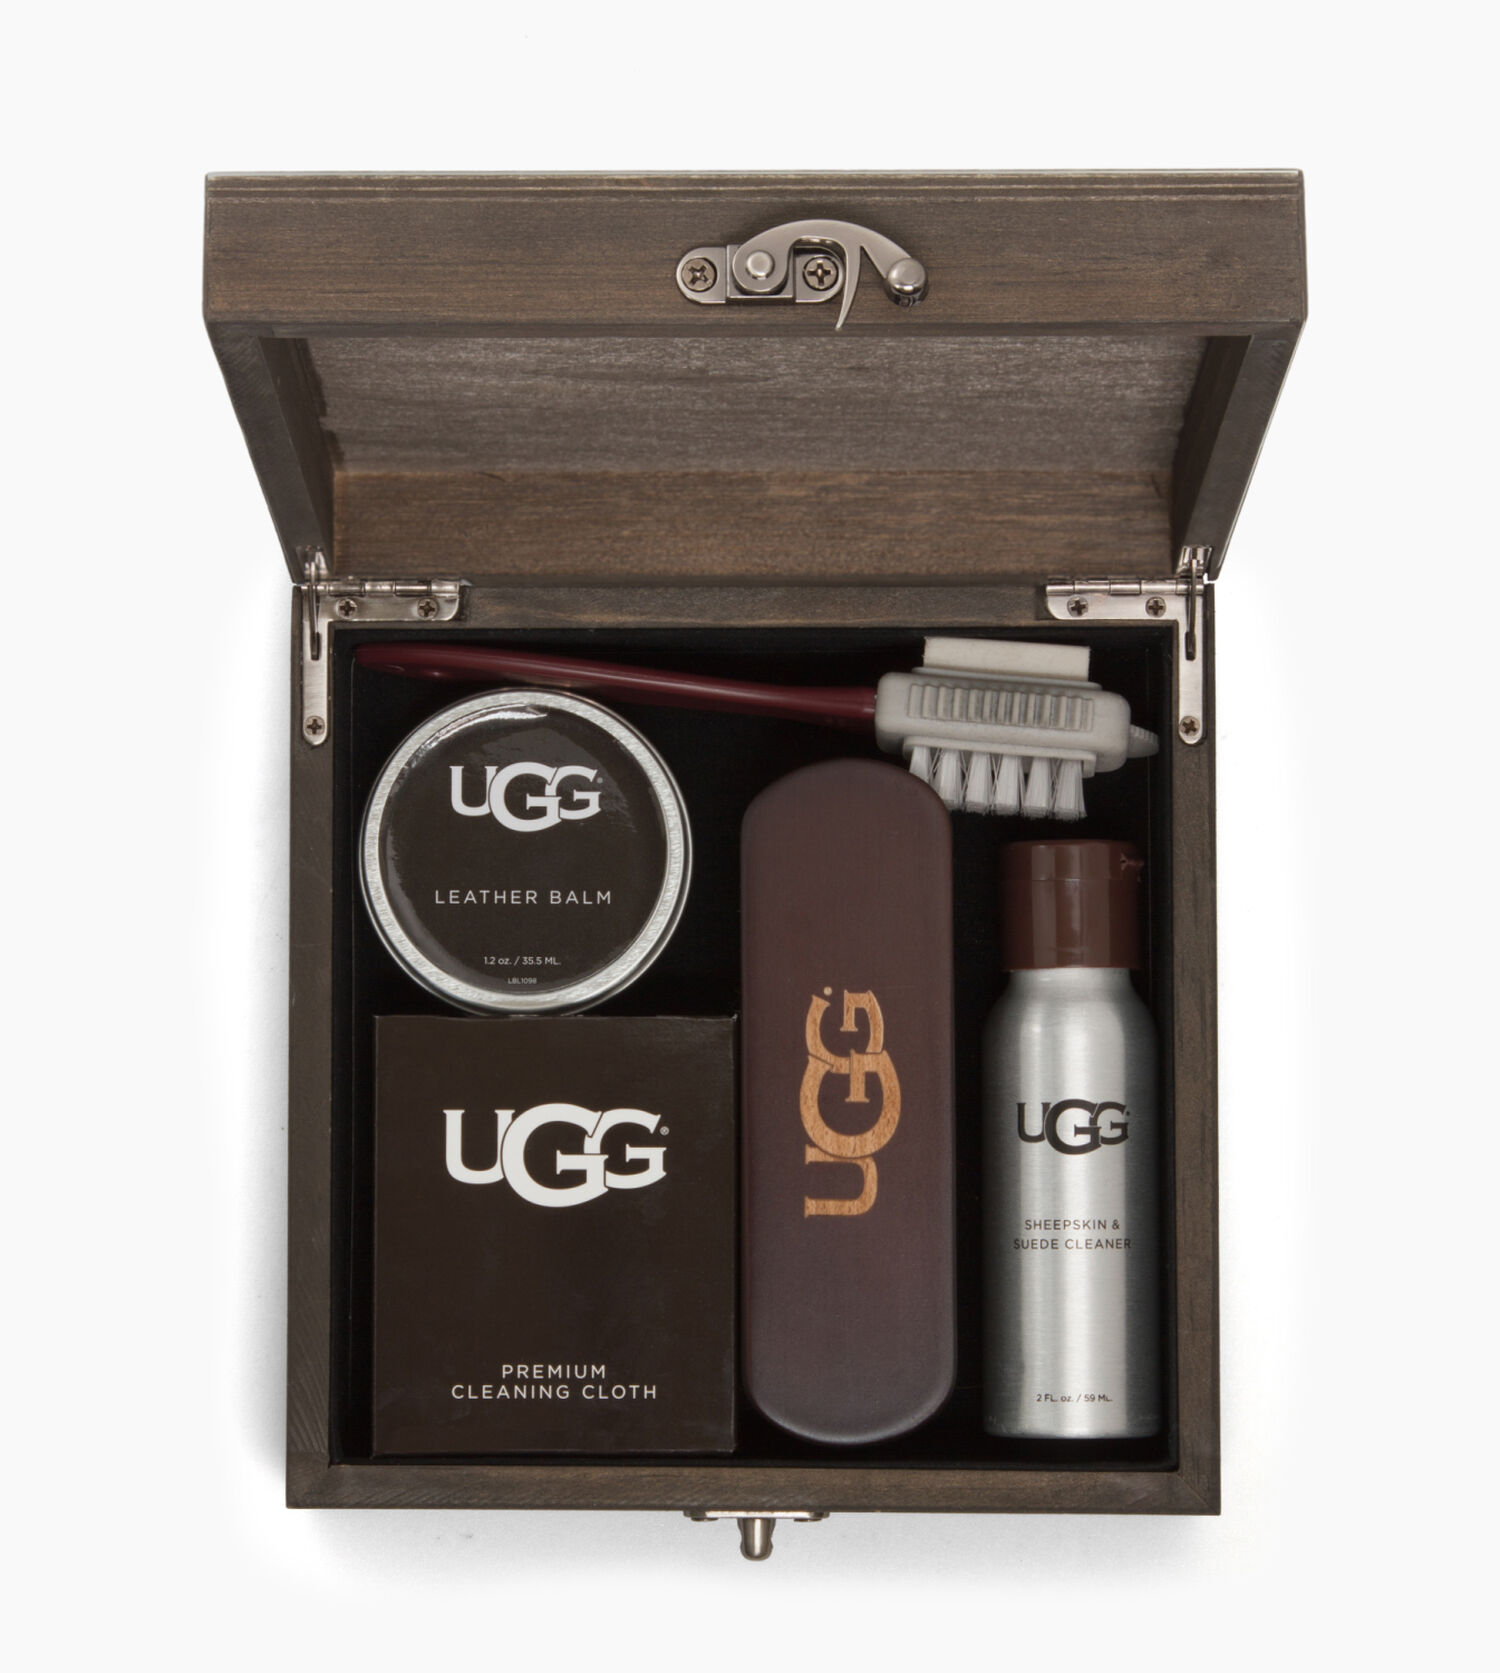 ugg australia sheepskin care kit cleaners